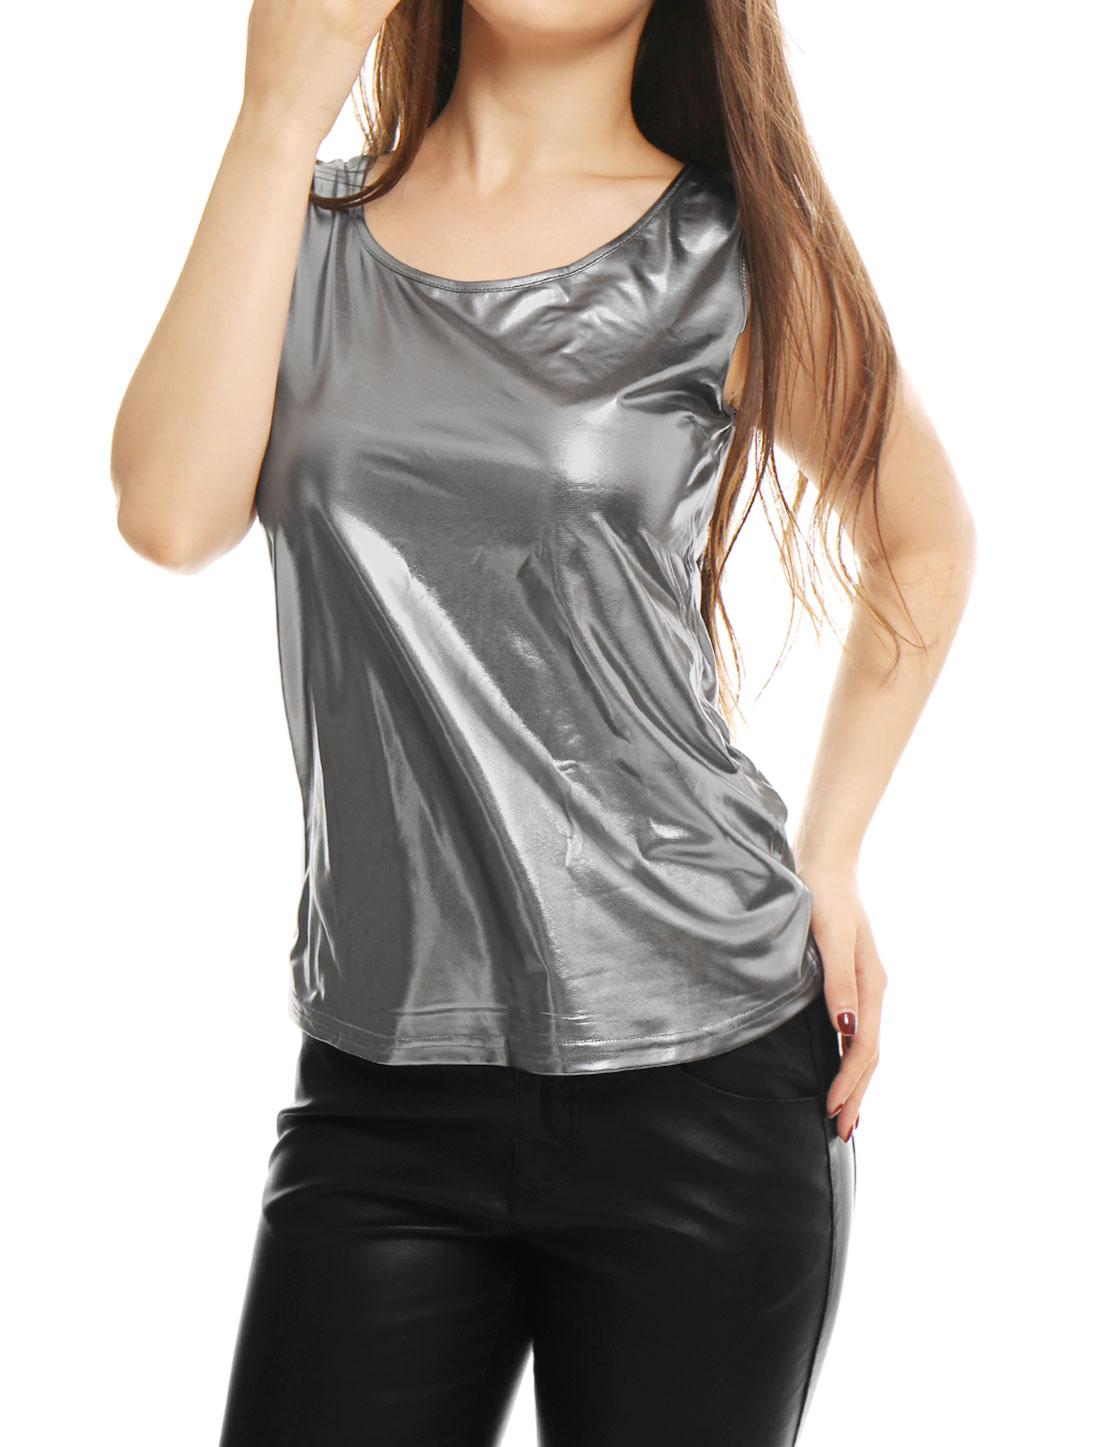 Women's Metallic Summer Fit Pullover Tank Top Silver Gray S